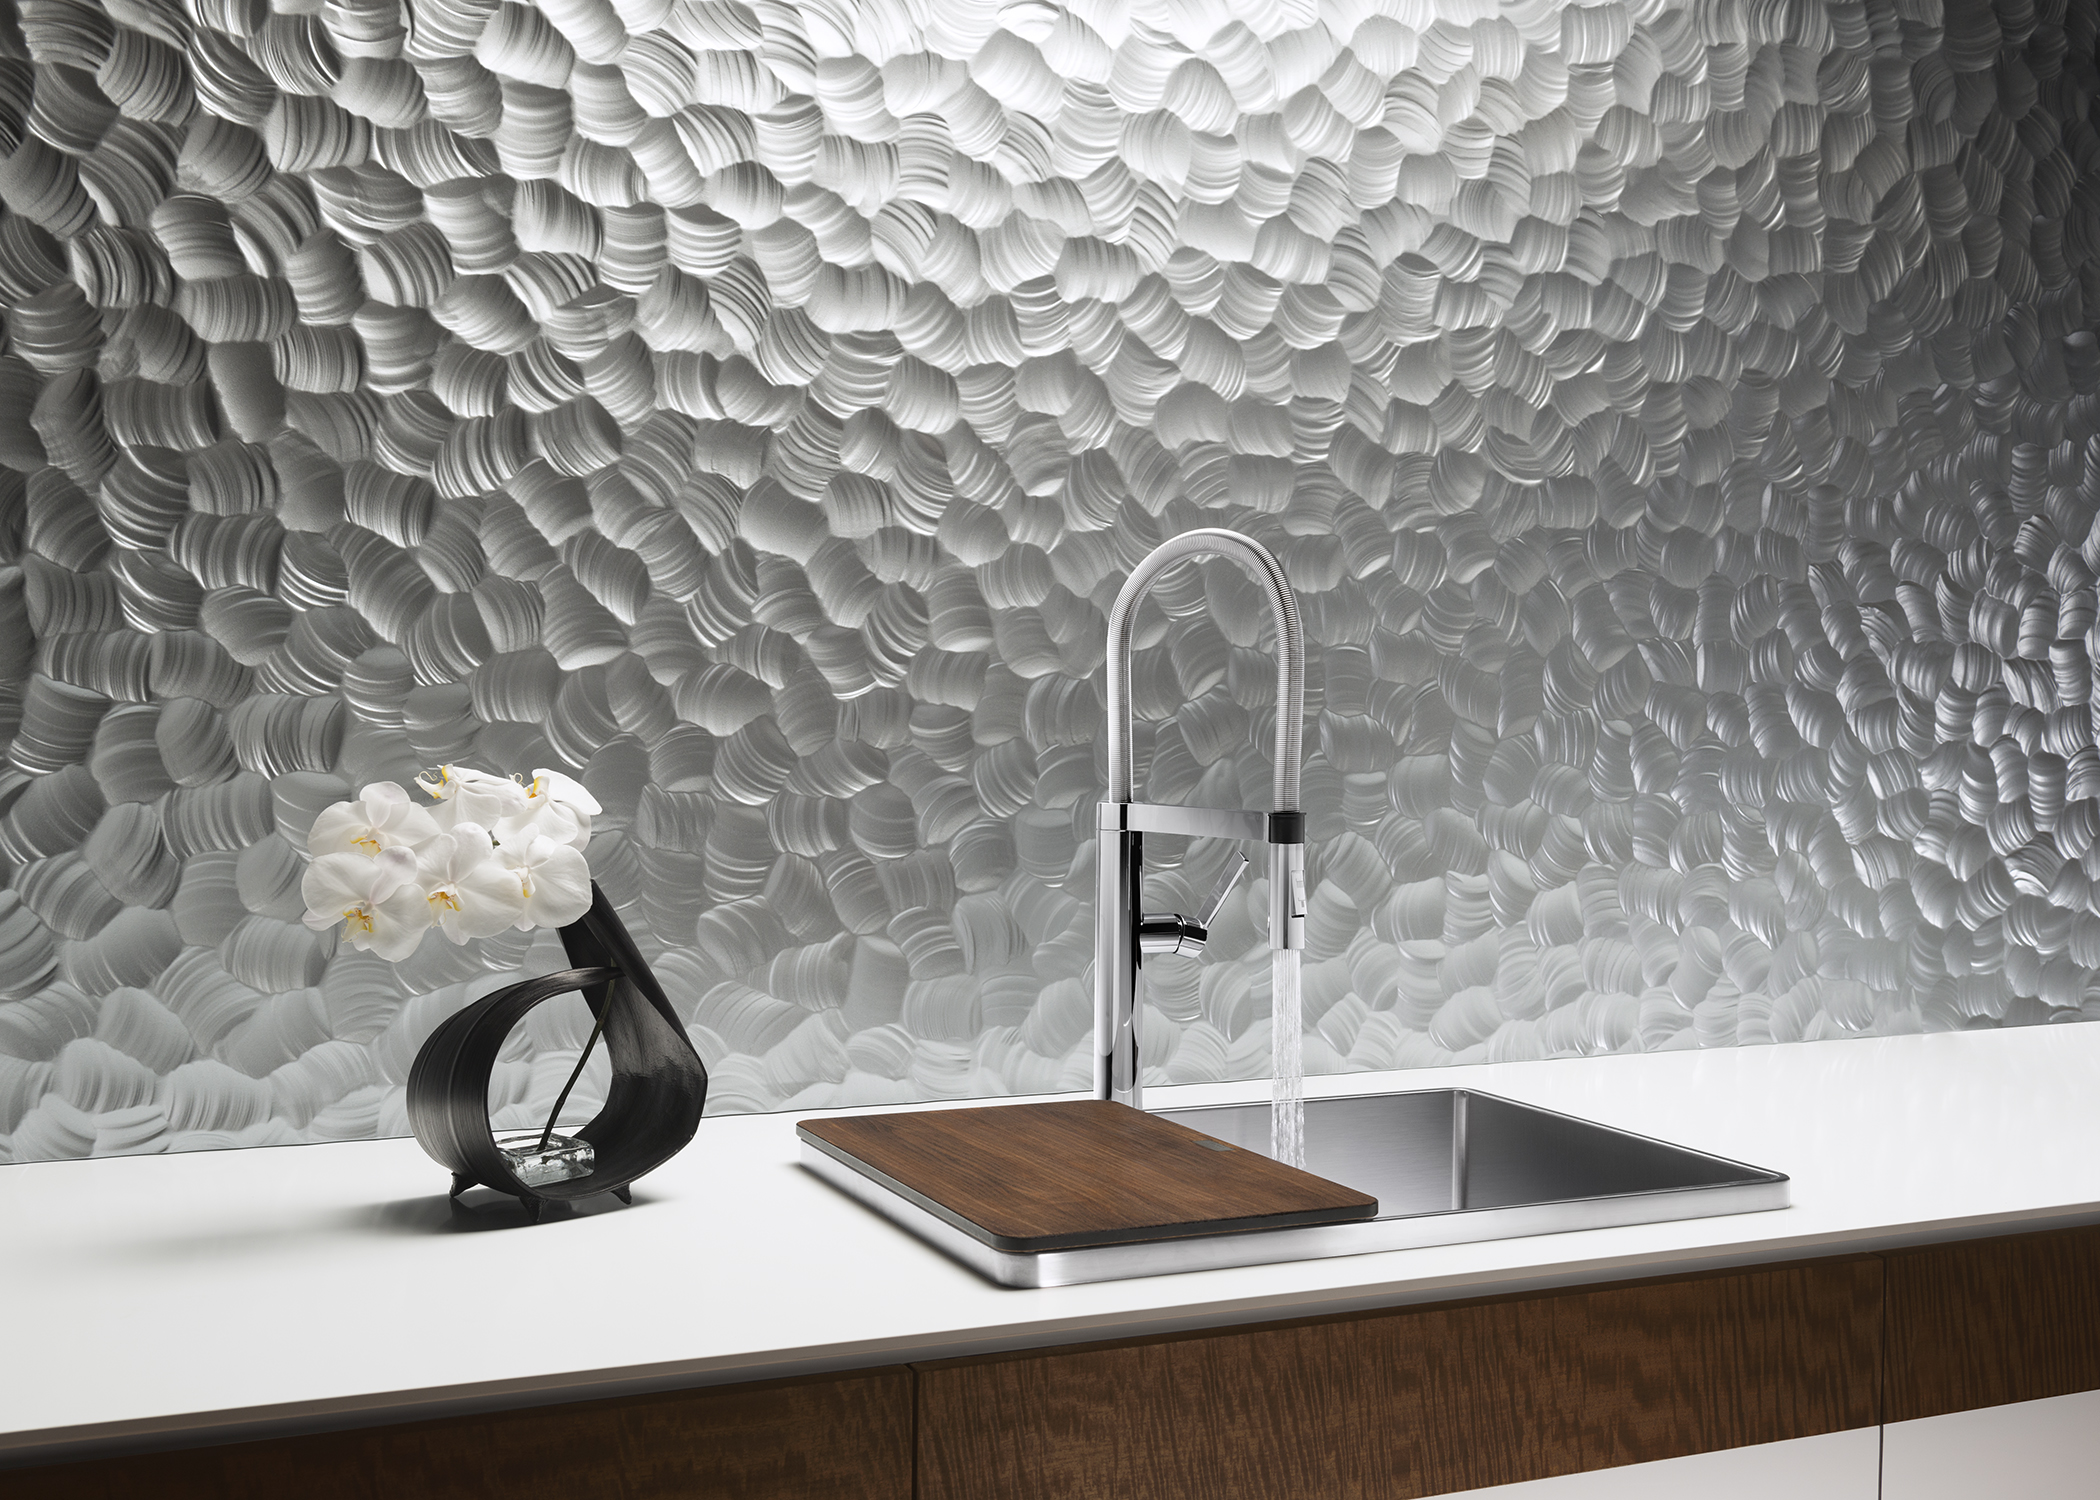 Best of #KBIS2015: BLANCO'S ATTIKA Stainless Steel Sink with walnut cutting board | Modenus' #BlogTourVegas at the Kitchen and Bath Industry Show (#KBIS2015)